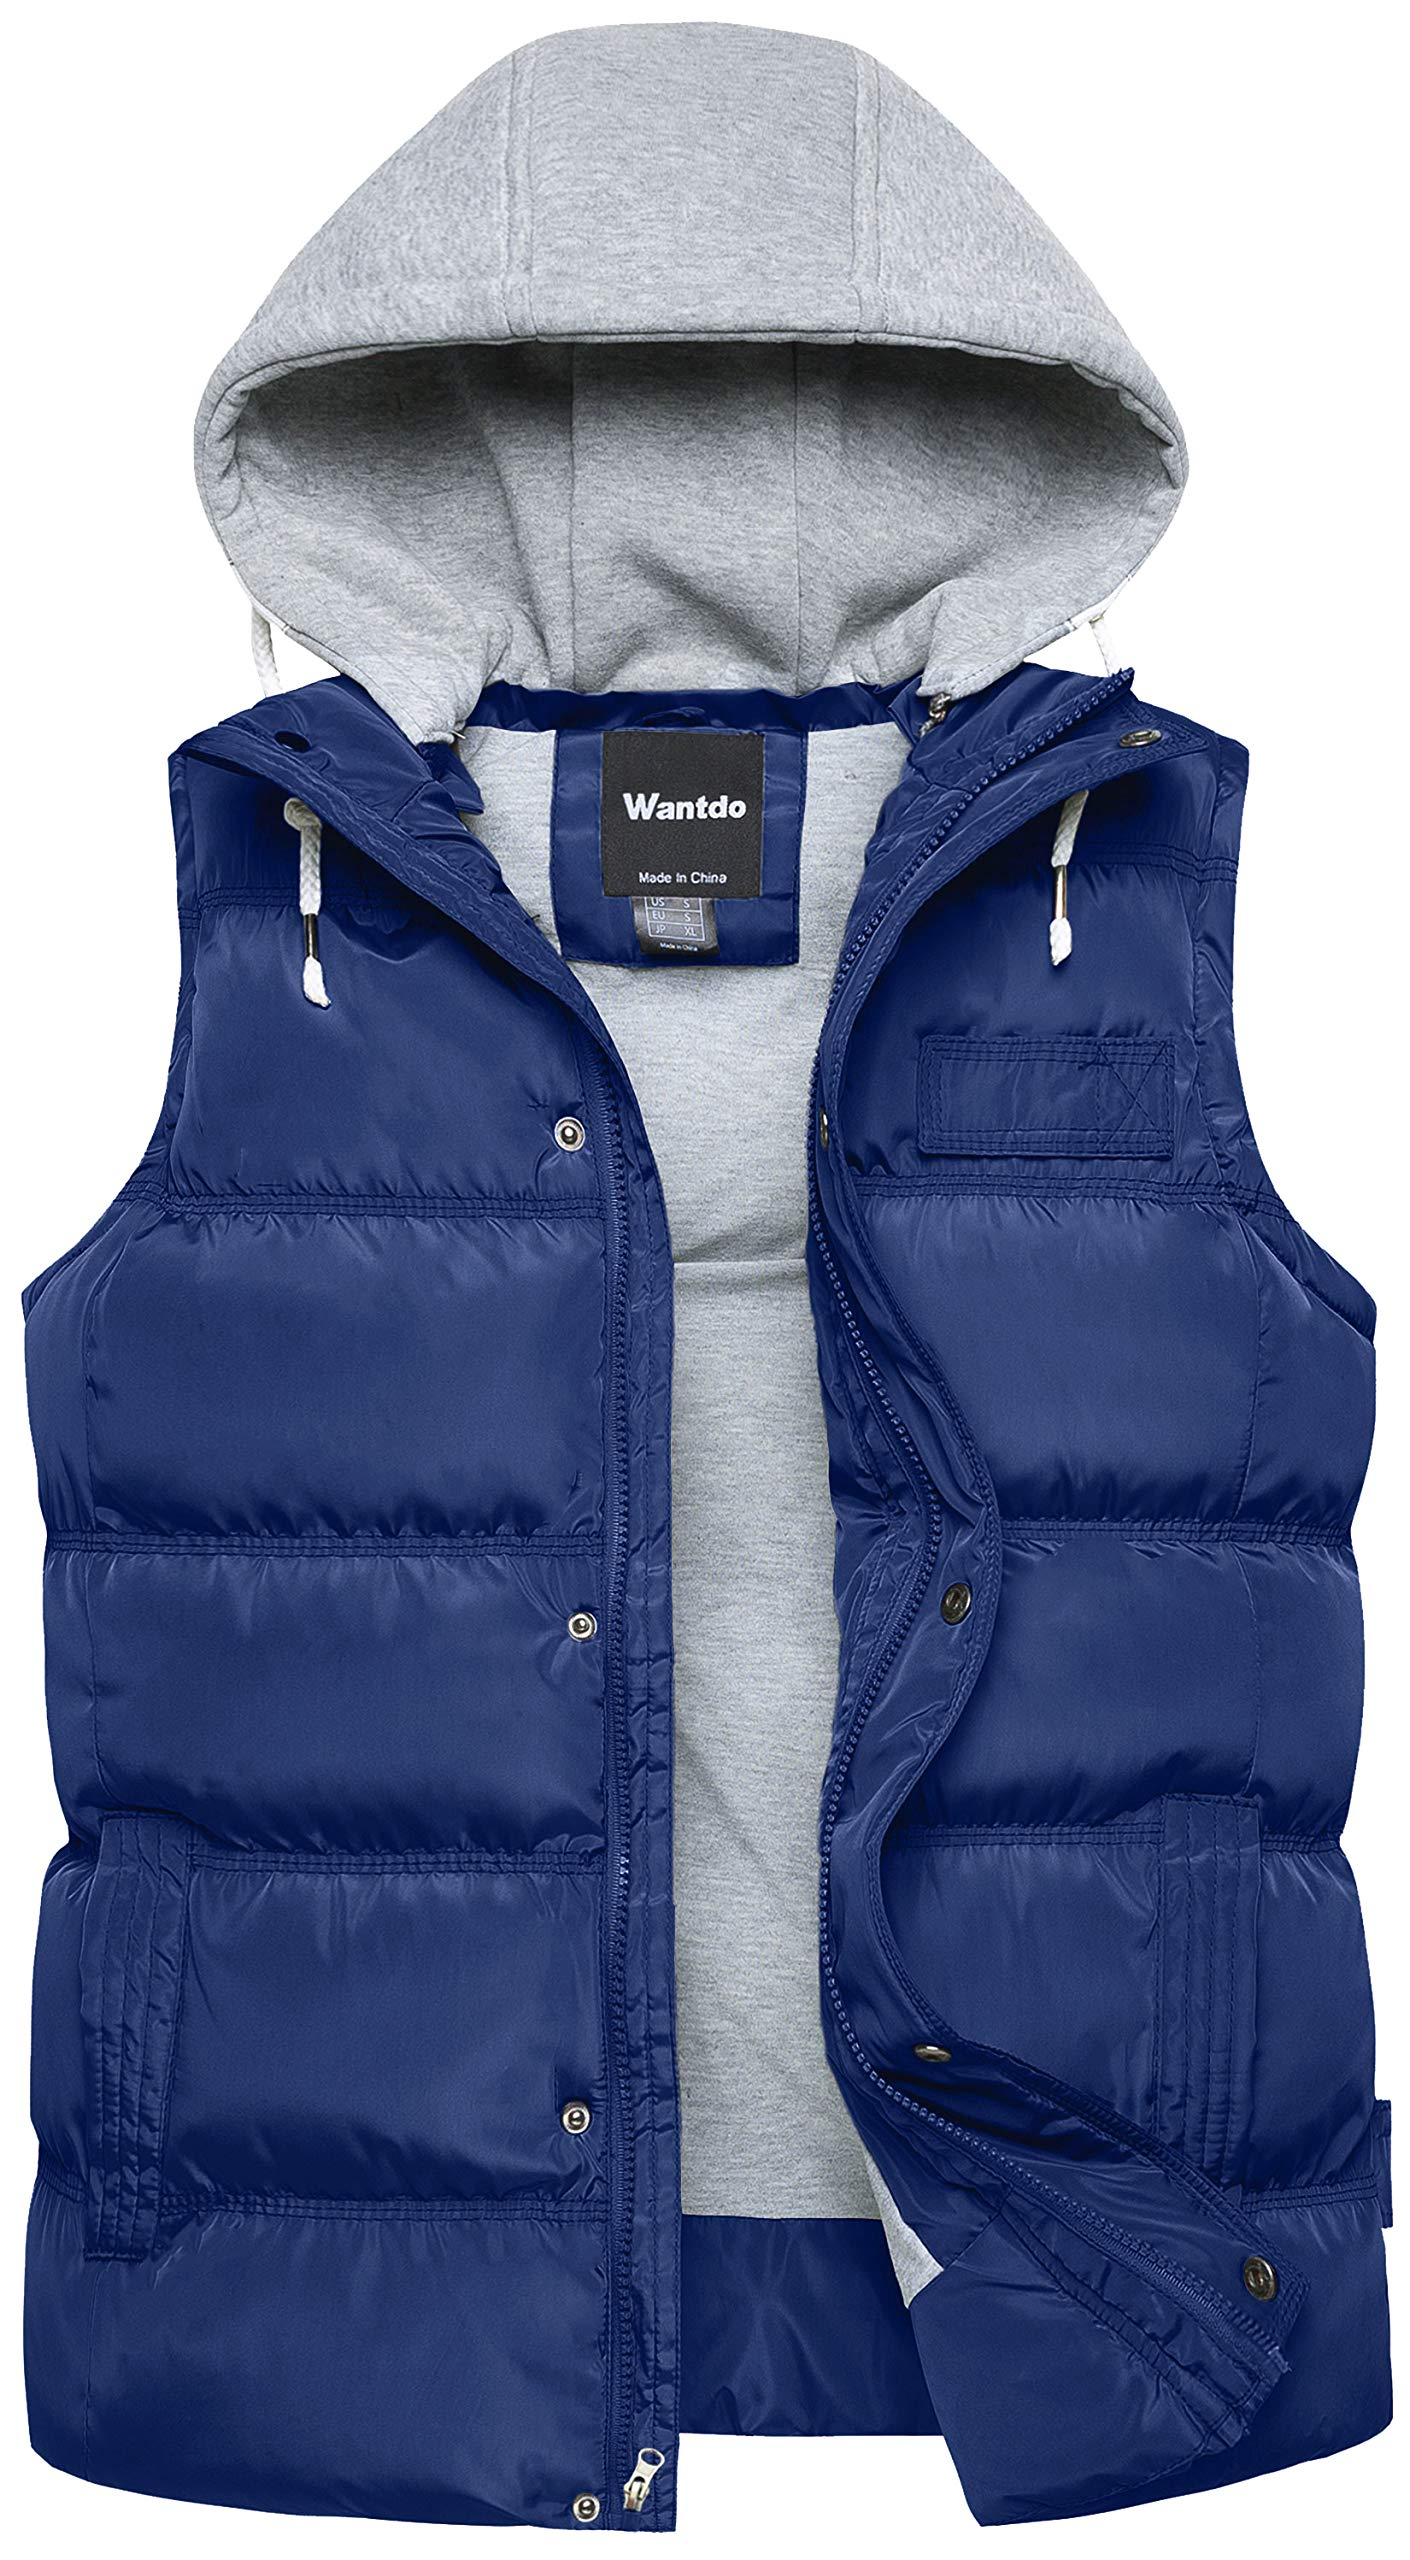 Wantdo Men's Winter Puffer Vest Quilted Down Puffer Outdoor Outwear Blue Large by Wantdo